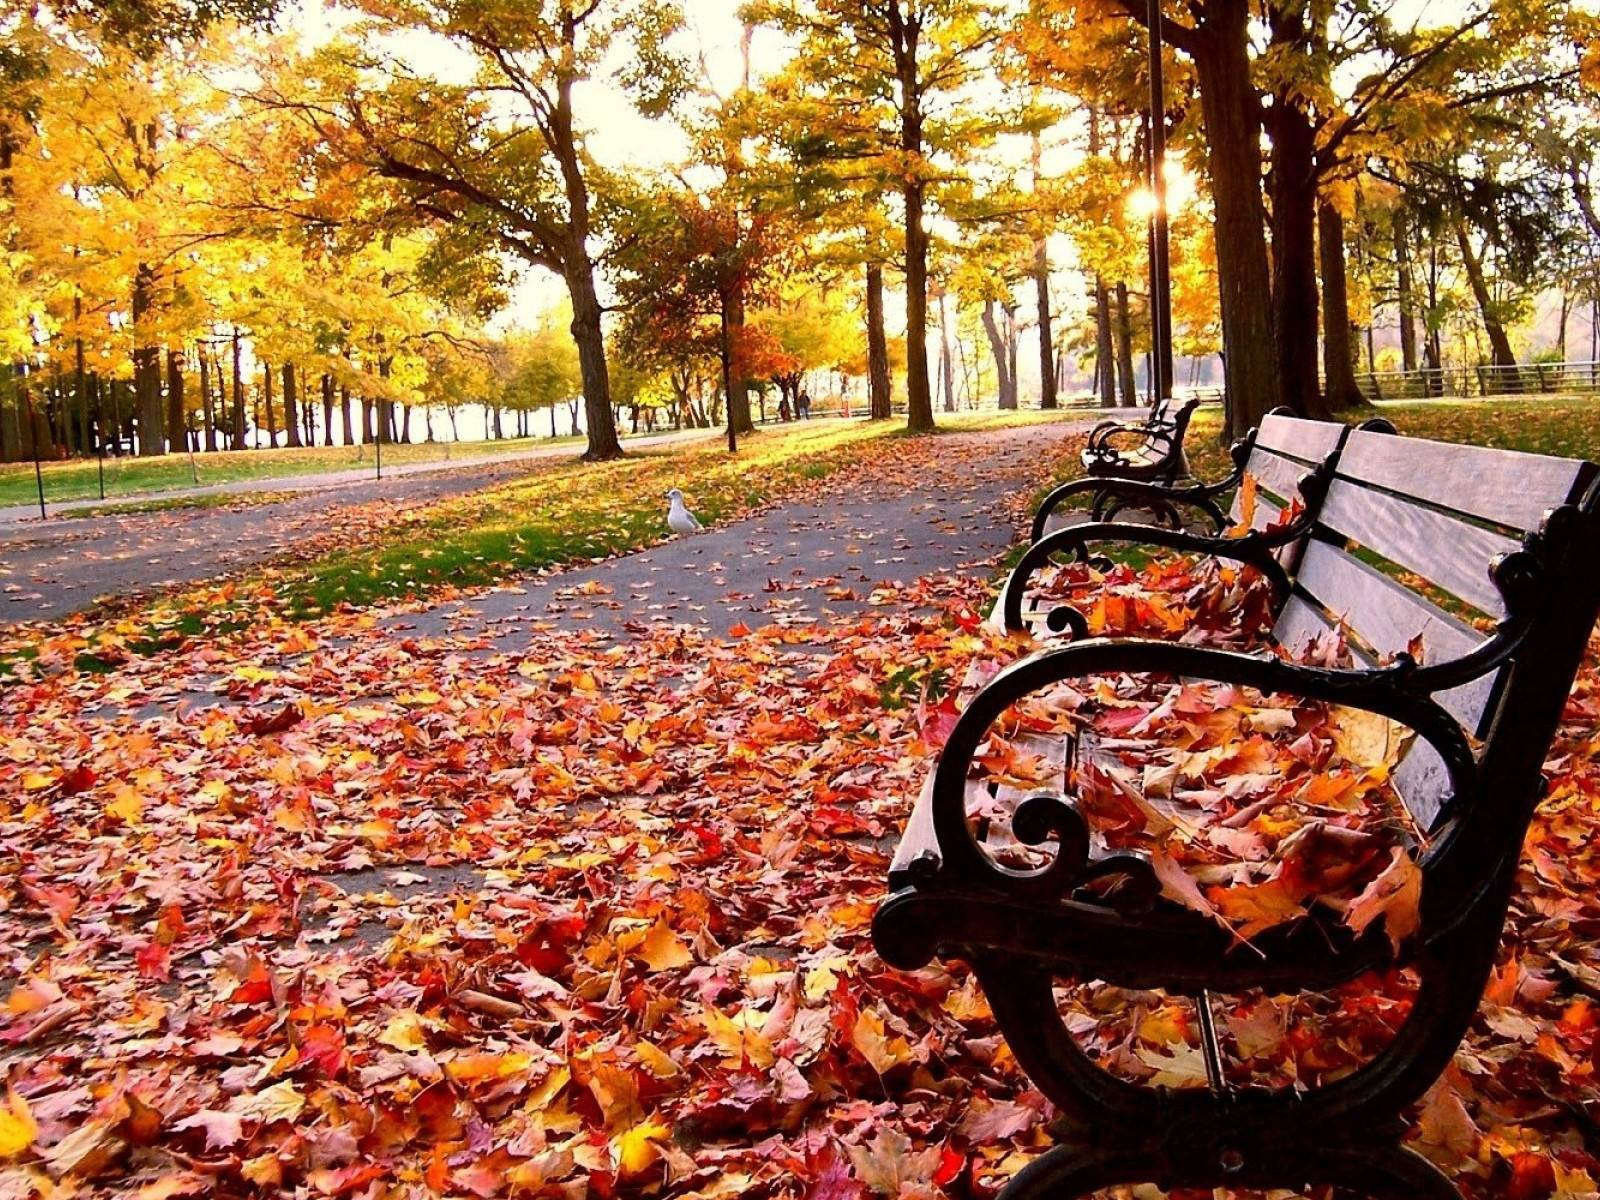 Leaf It To Me: 7 Cool Tips for Fall